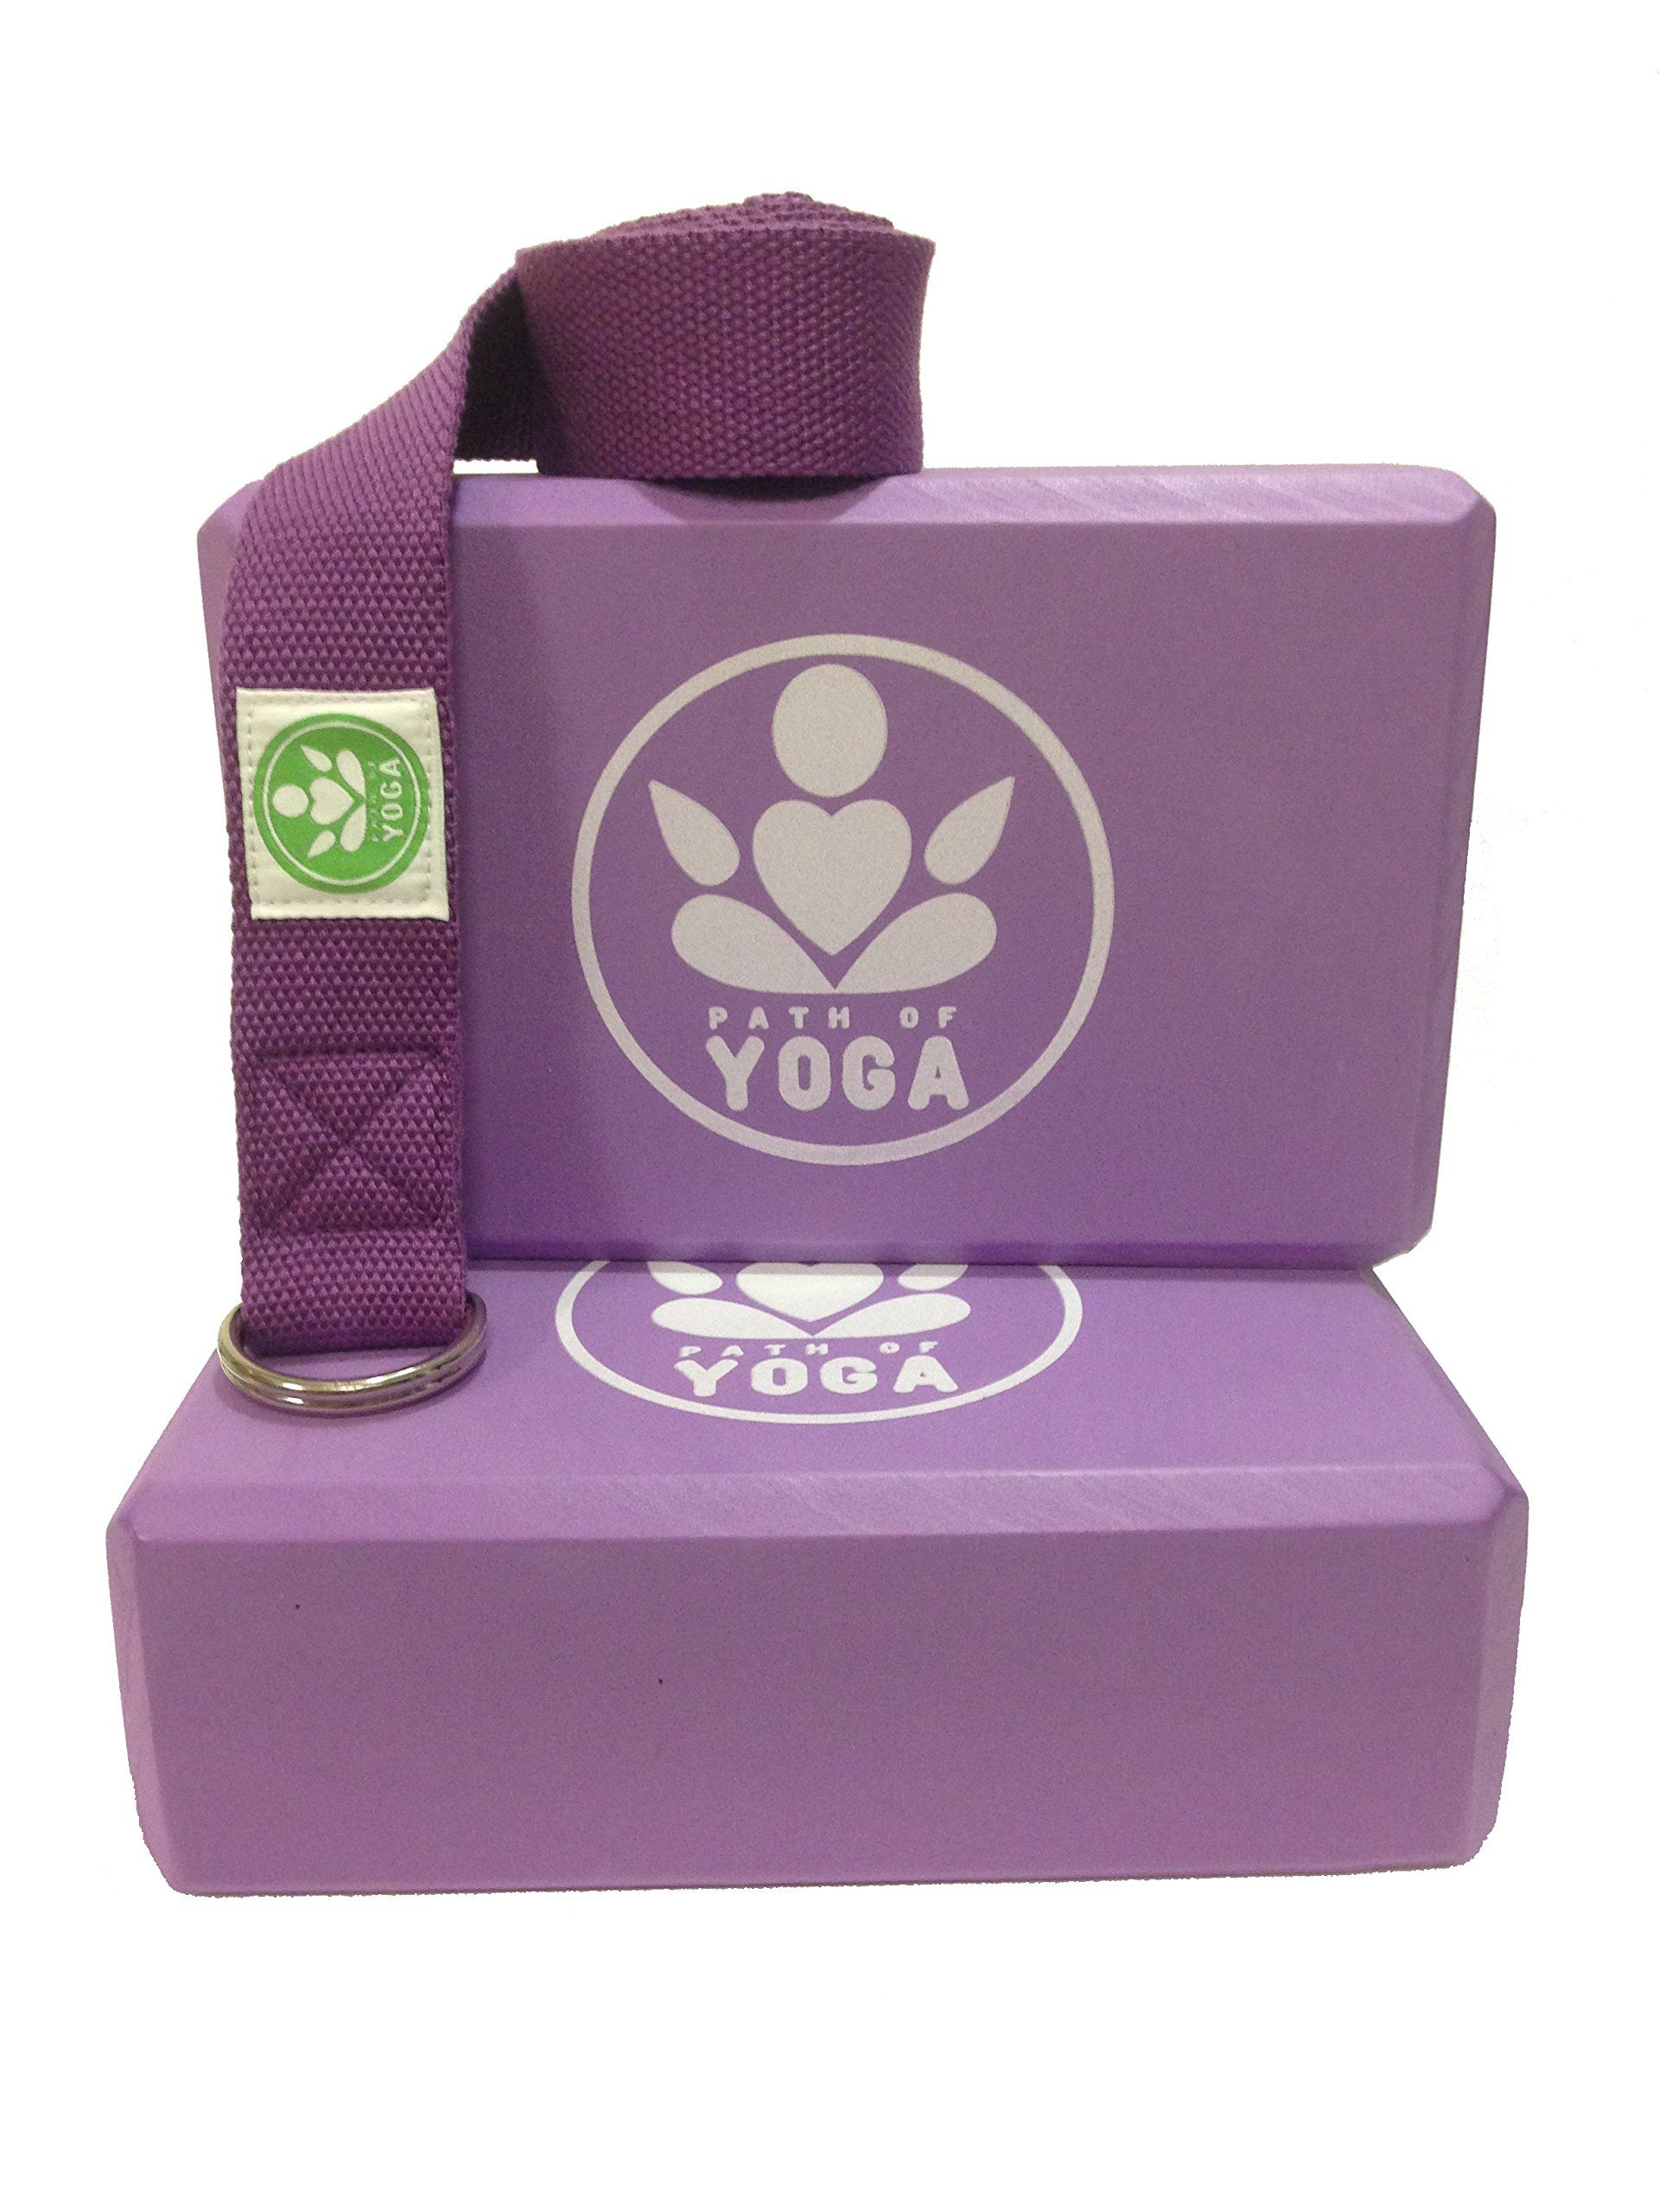 Path Of Yoga Blocks And Straps High Density Eva Foam Block Deepens Poses Improves Strength Balance And Flexibility Lightwei With Images Yoga Block Yoga Strap Foam Blocks